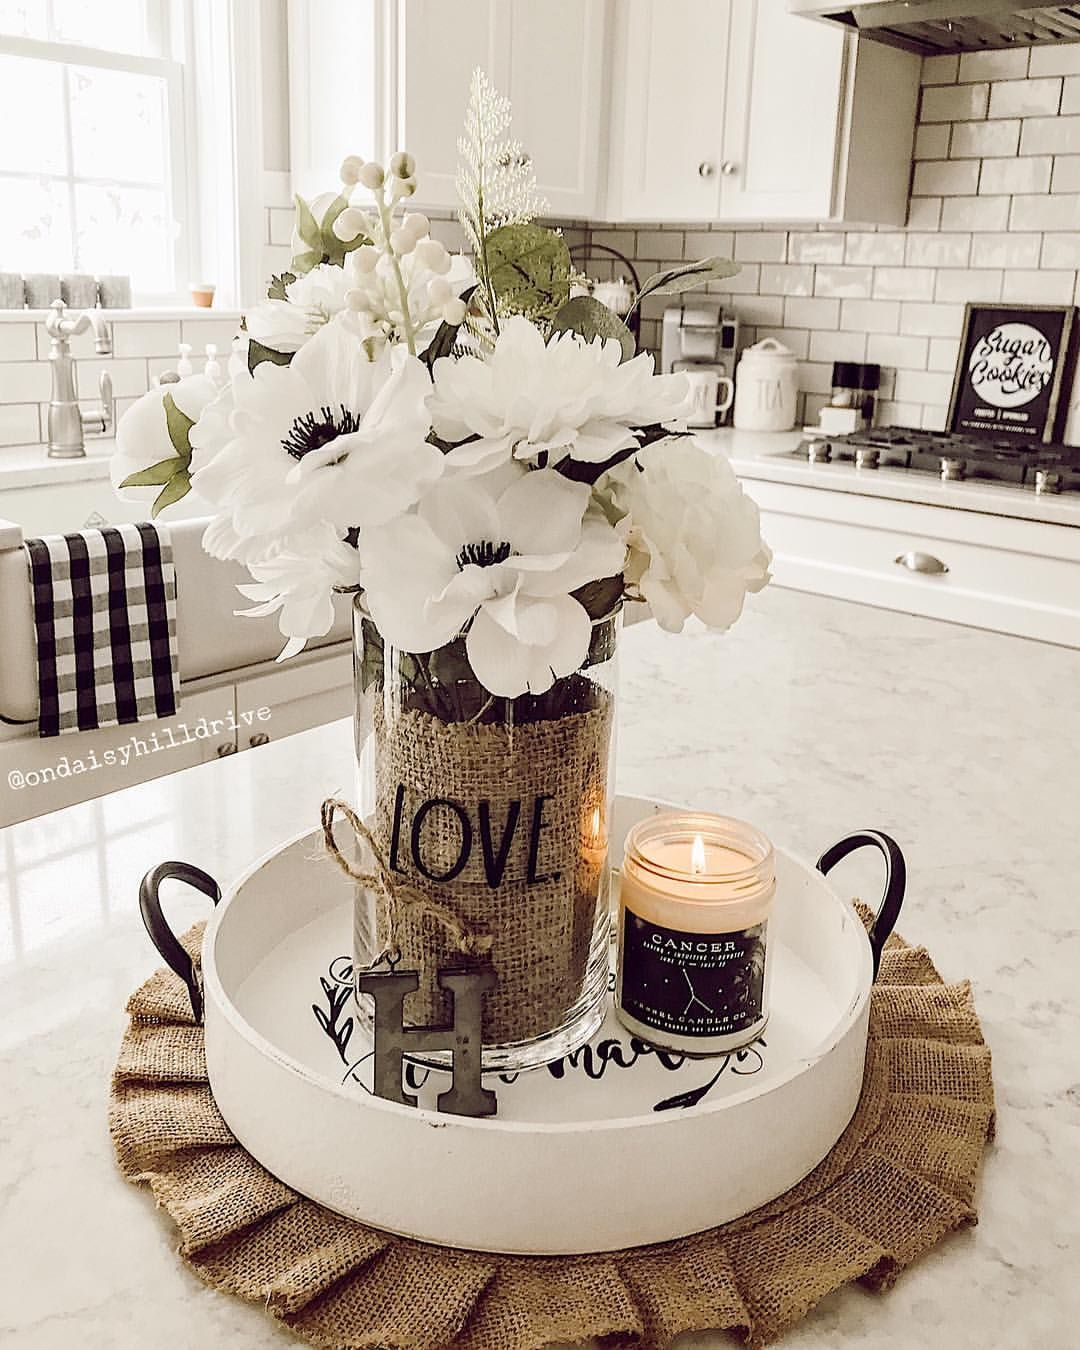 Kitchen Jerri On Instagram Hello There Fri Yay The Sun Is Shining The Kitchen Is In 2020 Kitchen Table Decor Dining Room Table Centerpieces Dining Room Table Decor